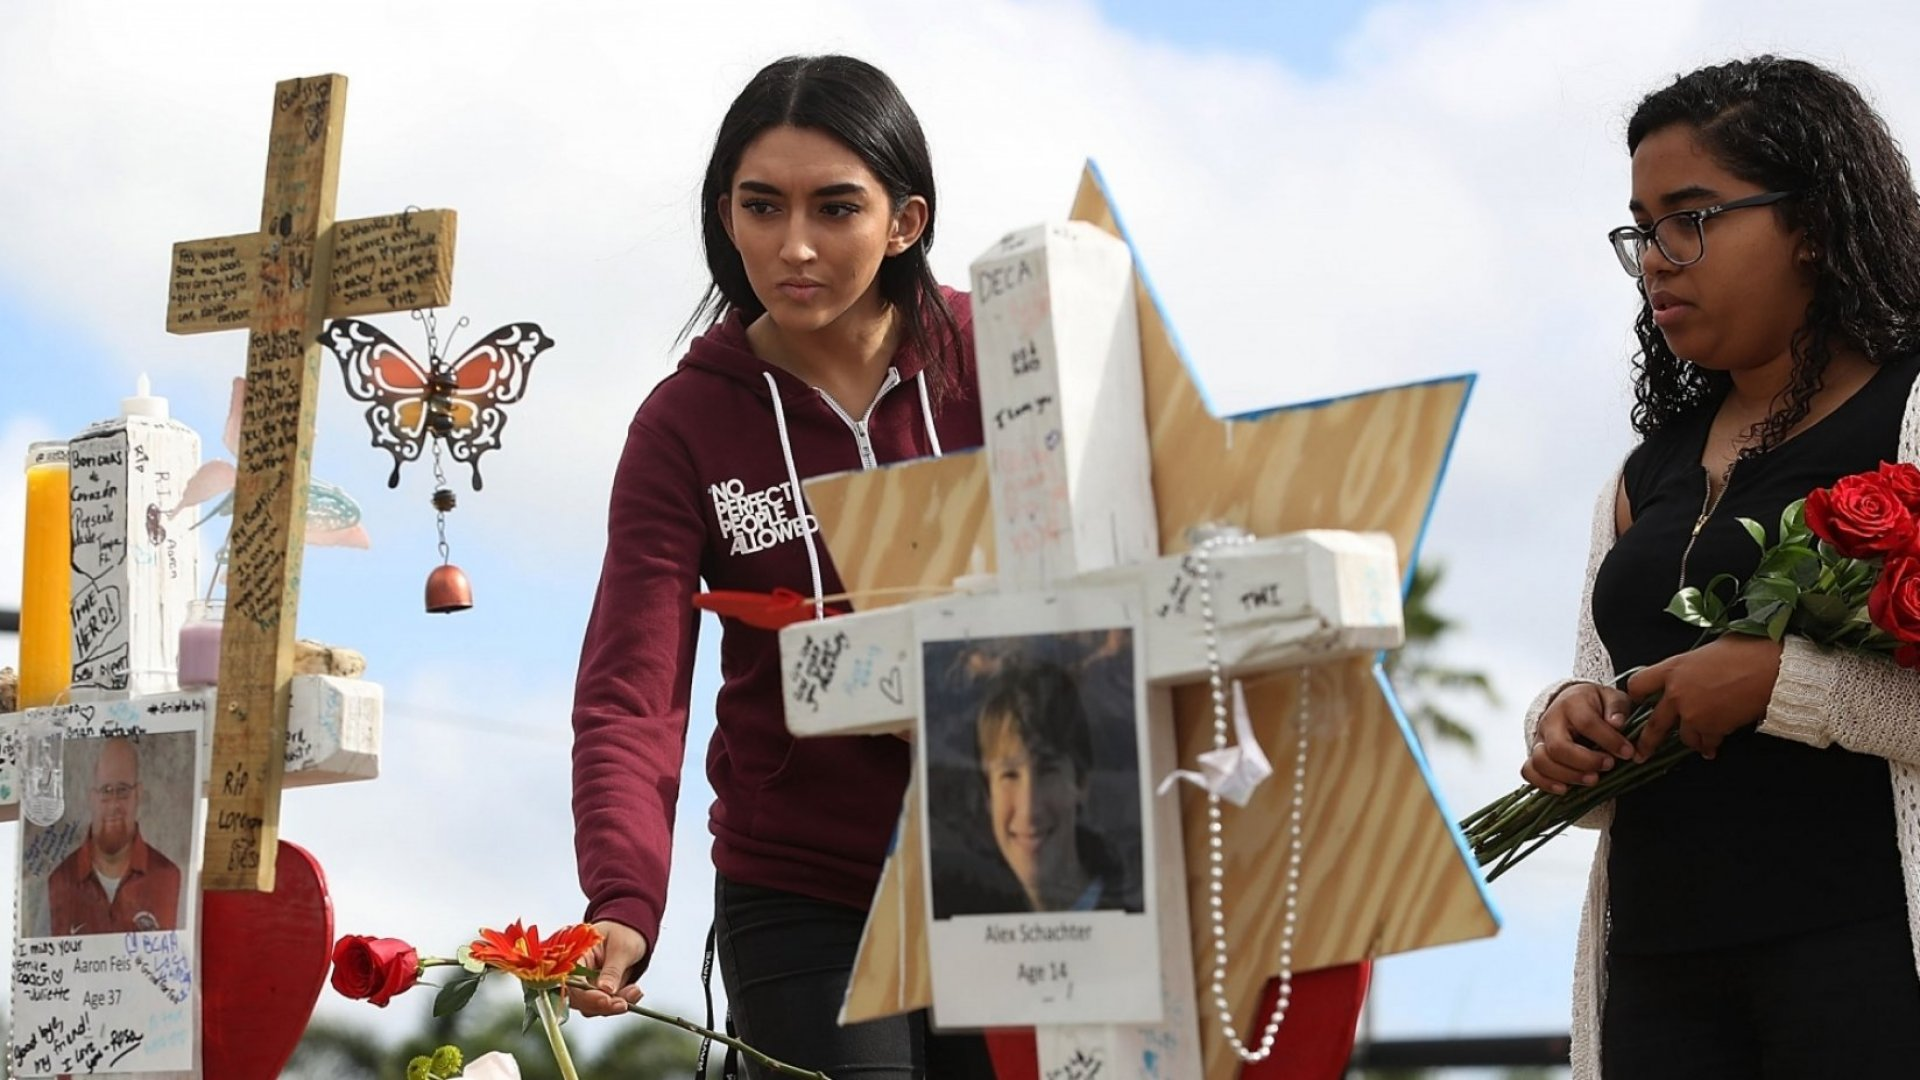 Marissa Rodriguez (left) and Ambar Ramirez visit a makeshift memorial in front of Marjory Stoneman Douglas High School for the 17 people killed there on February 14.